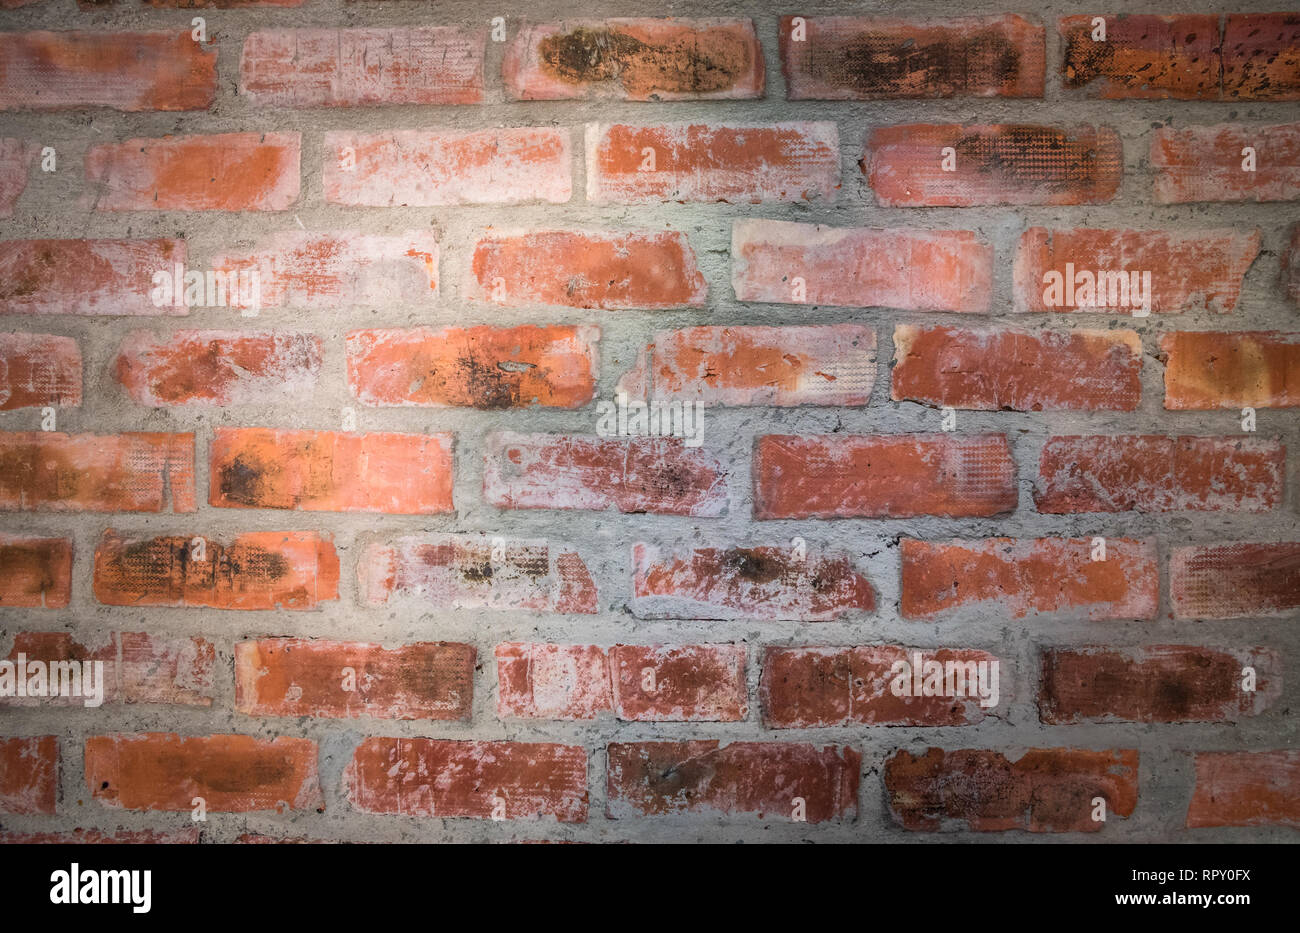 Red brick wall. Nice vintage textured background. Stock Photo